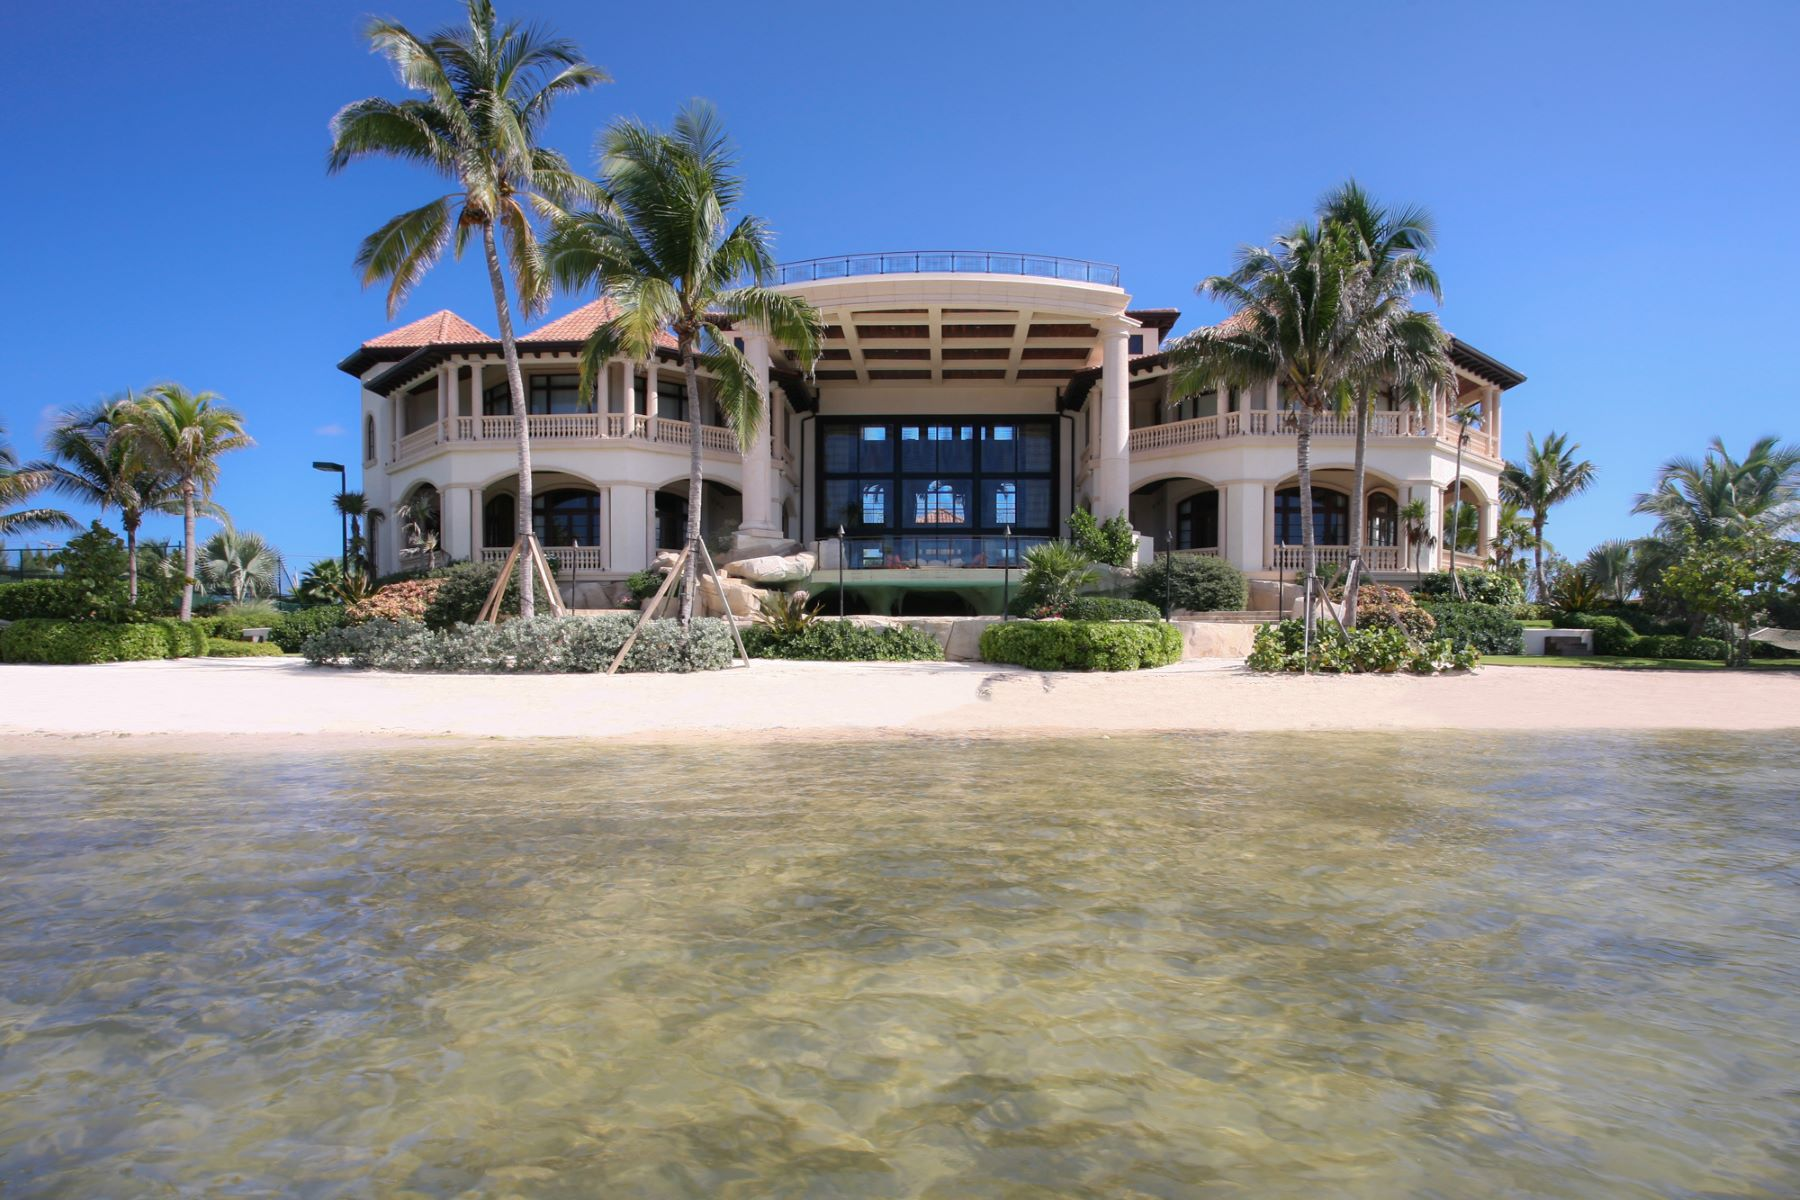 Casa para uma família para Venda às Castillo Caribe, Caribbean luxury real estate Castillo Caribe South Sound Rd George Town, Grand Cayman, KY1 Ilhas Cayman